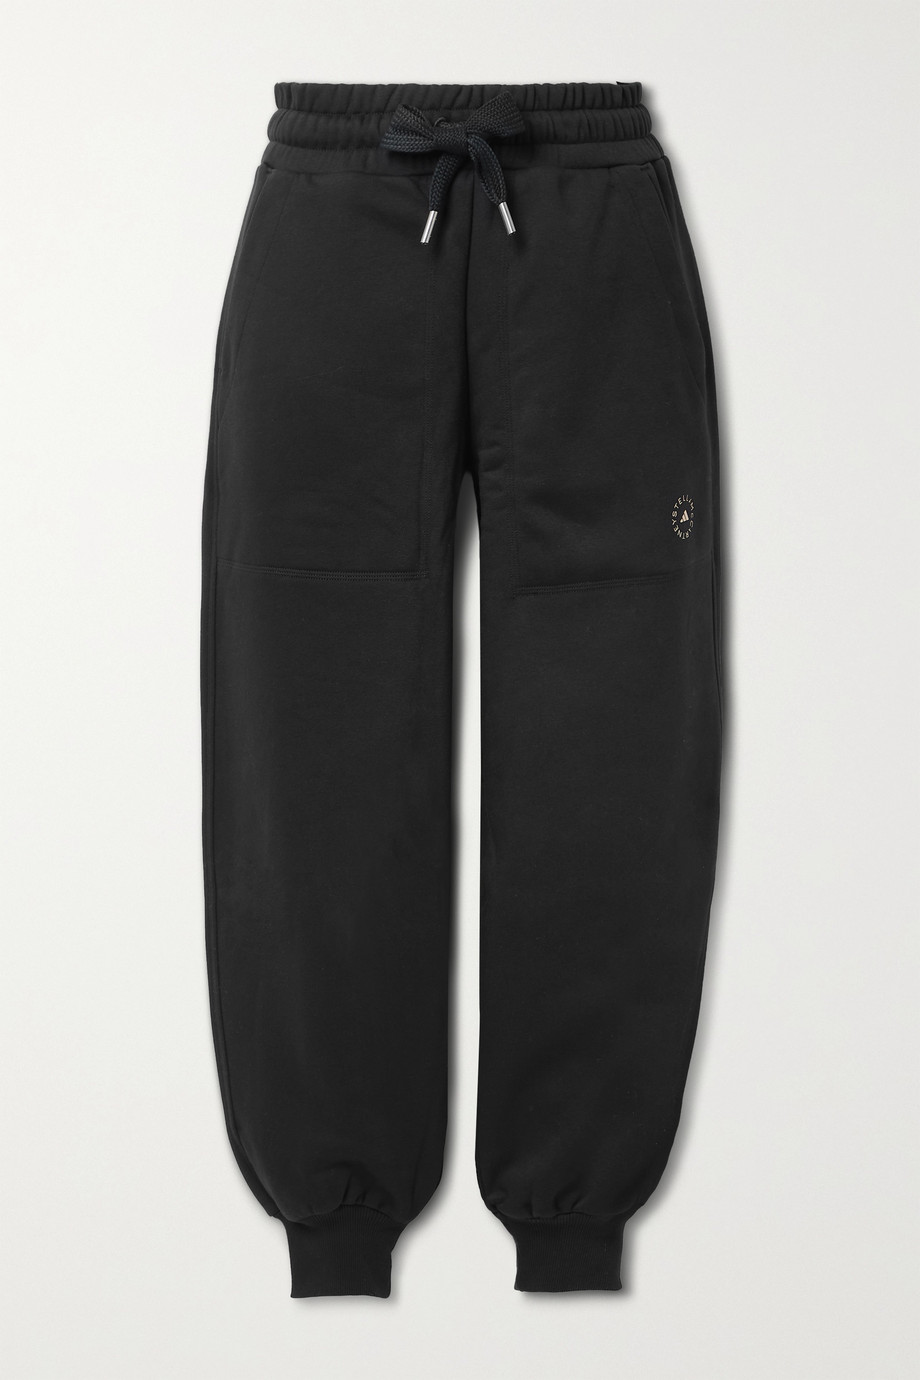 ADIDAS BY STELLA MCCARTNEY Cotton-blend jersey track pants